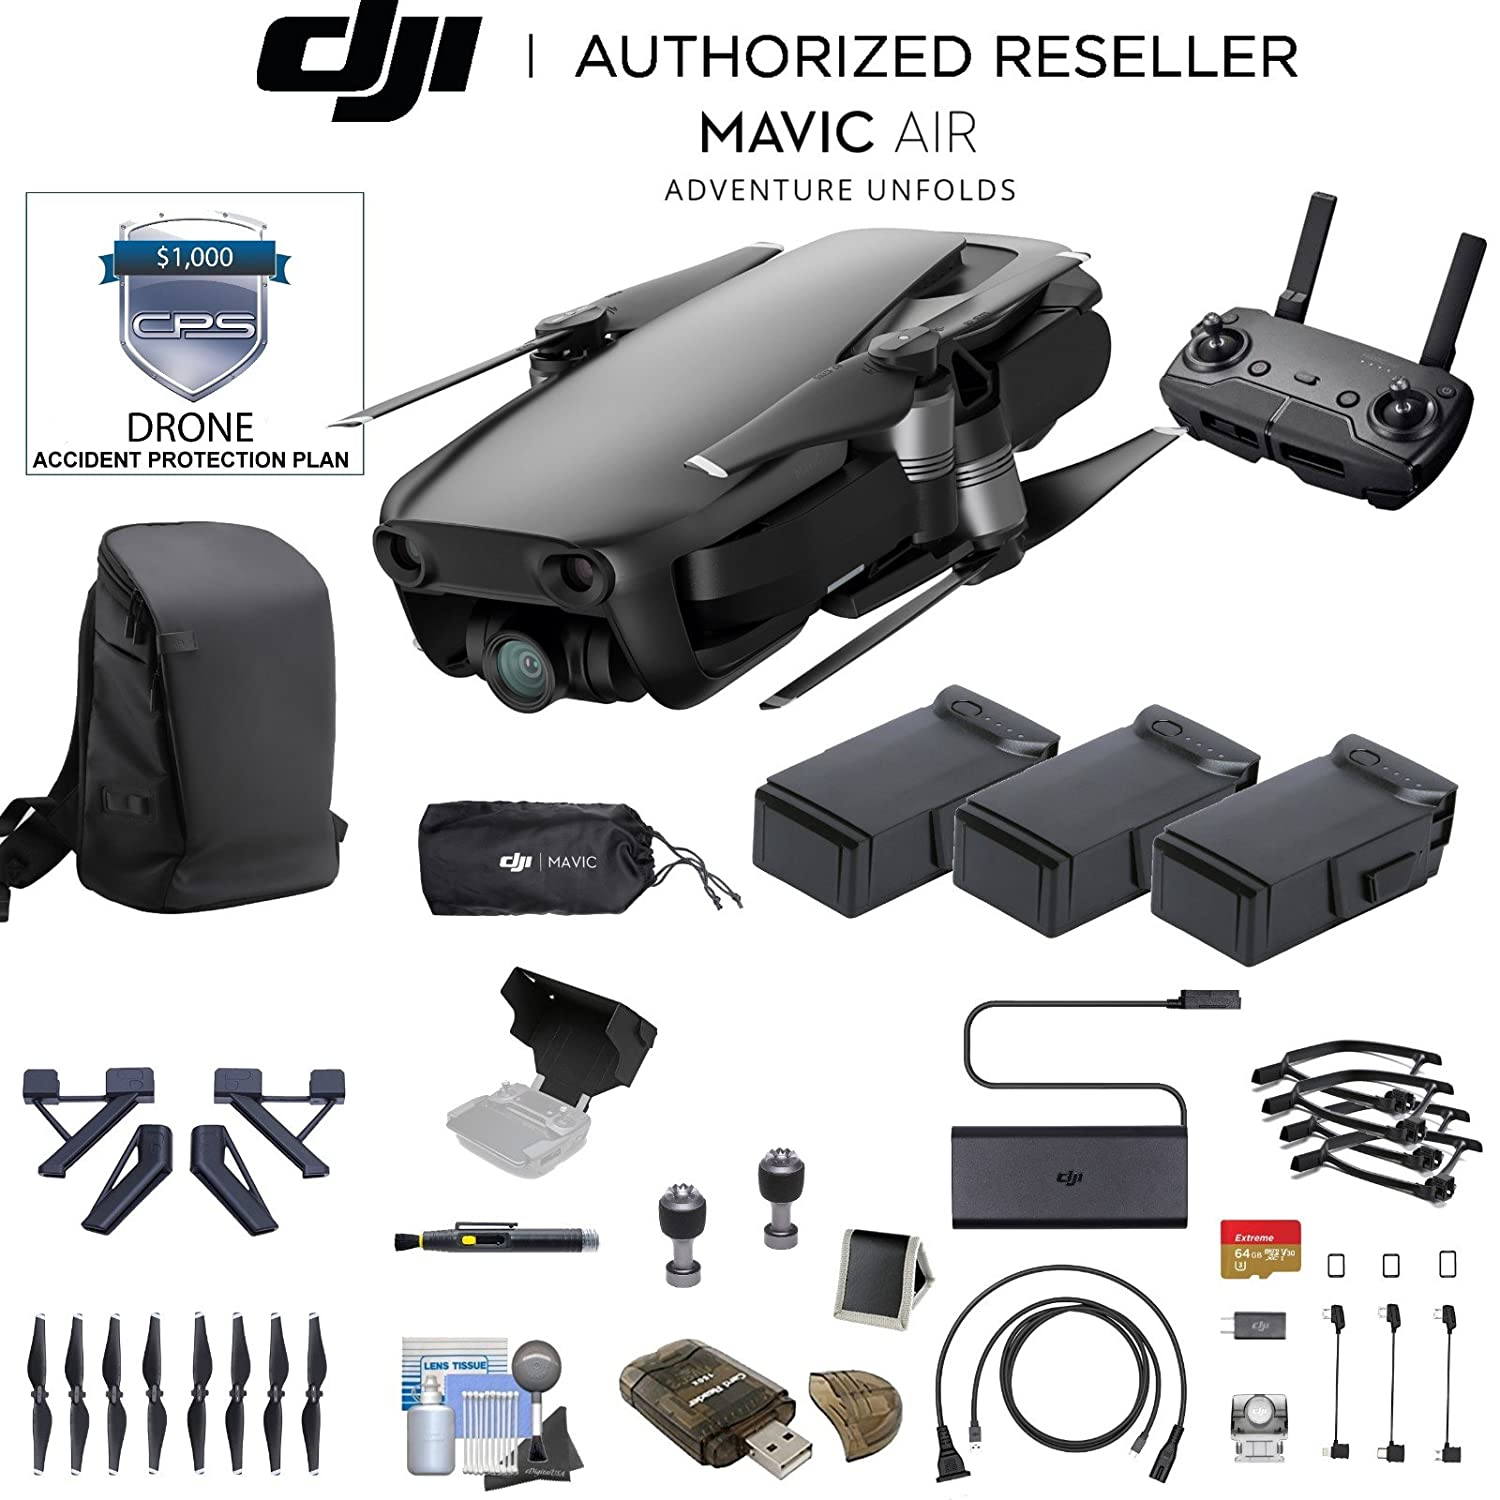 ArticホワイトDJI Mavic Air ( CP。PT。00000138.01 )クアッドコプタードローン3バッテリーバンドル, 3 Battery Bundle & Accidental Warranty, CP.PT.00000130.01-4 B07C7NJ2HY 3 Battery Bundle & Accidental Warranty|ブラック ブラック 3 Battery Bundle & Accidental Warranty